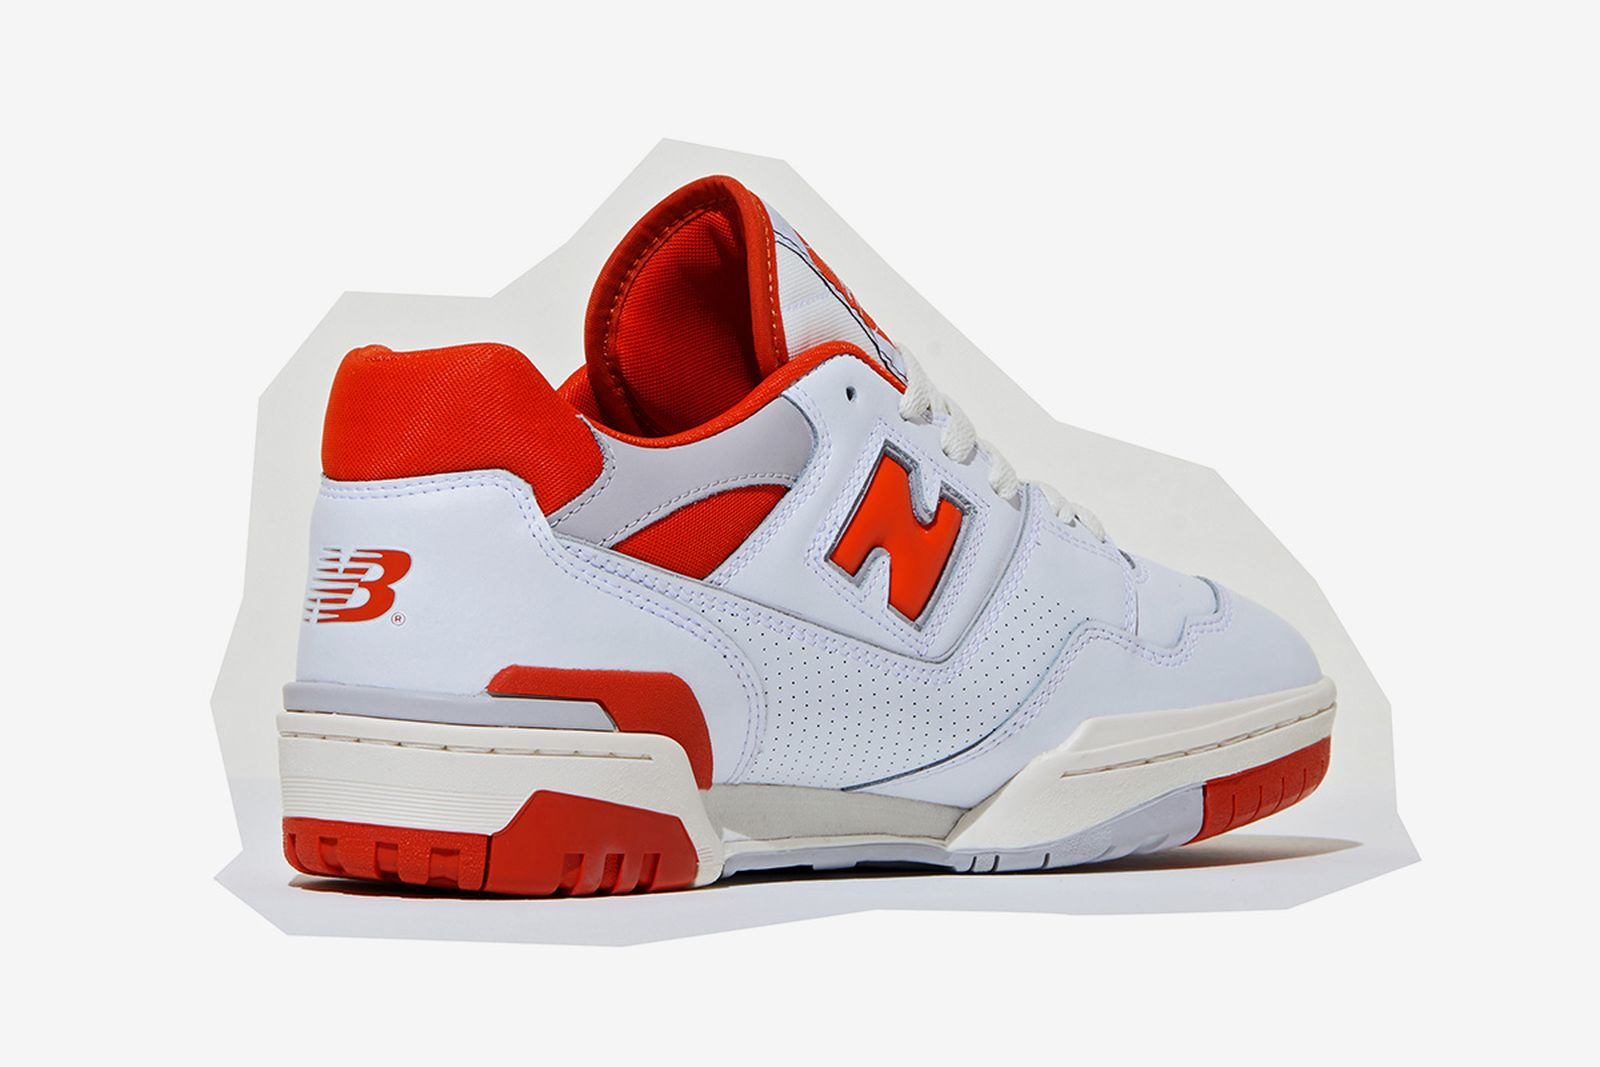 size-new-balance-550-orange-release-date-price-06